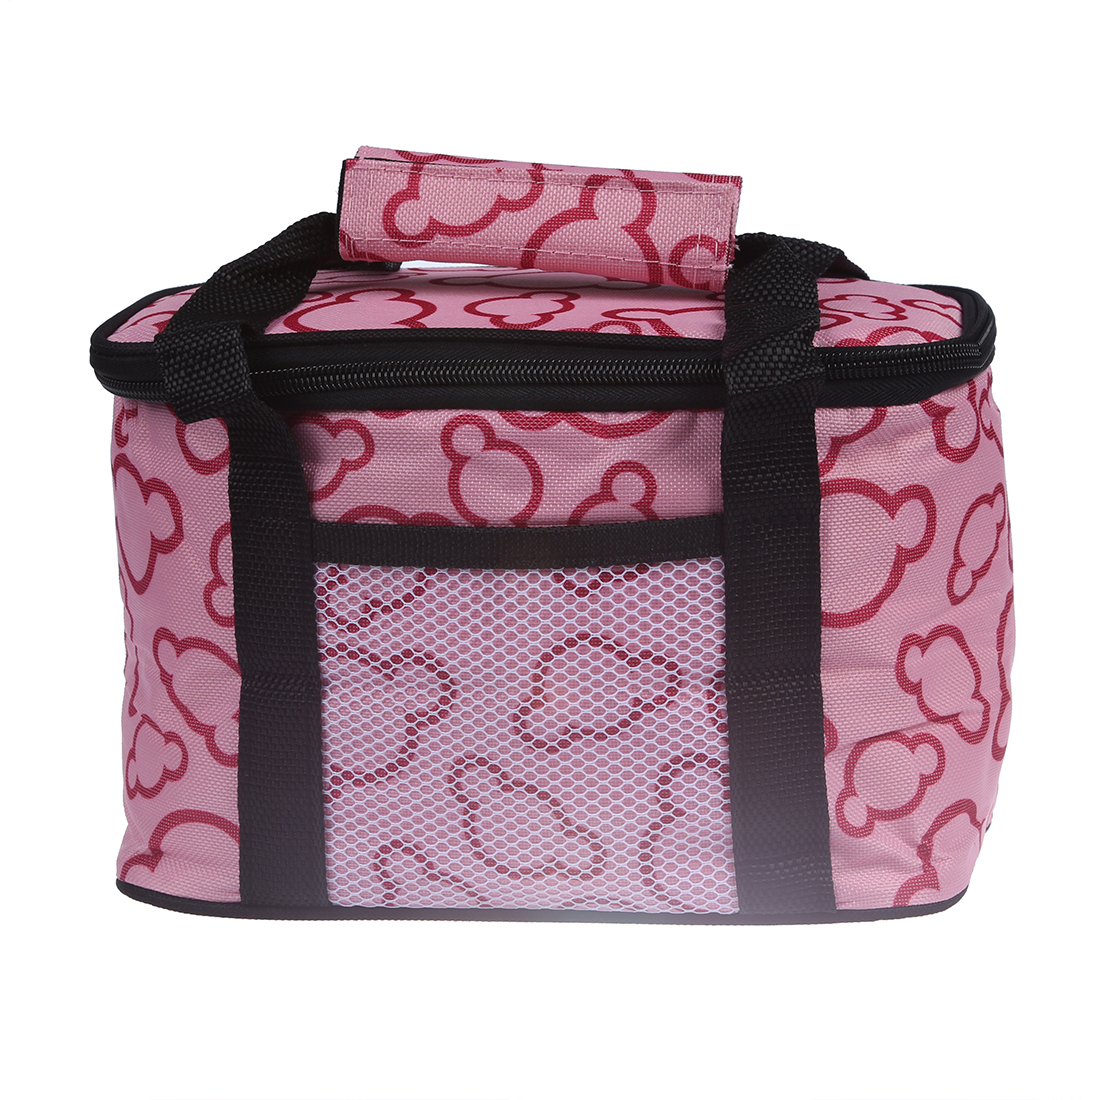 FGGS-Insulated and Water-Proof Lining Lunch Box Bag Cooler Tote Bag--Pink